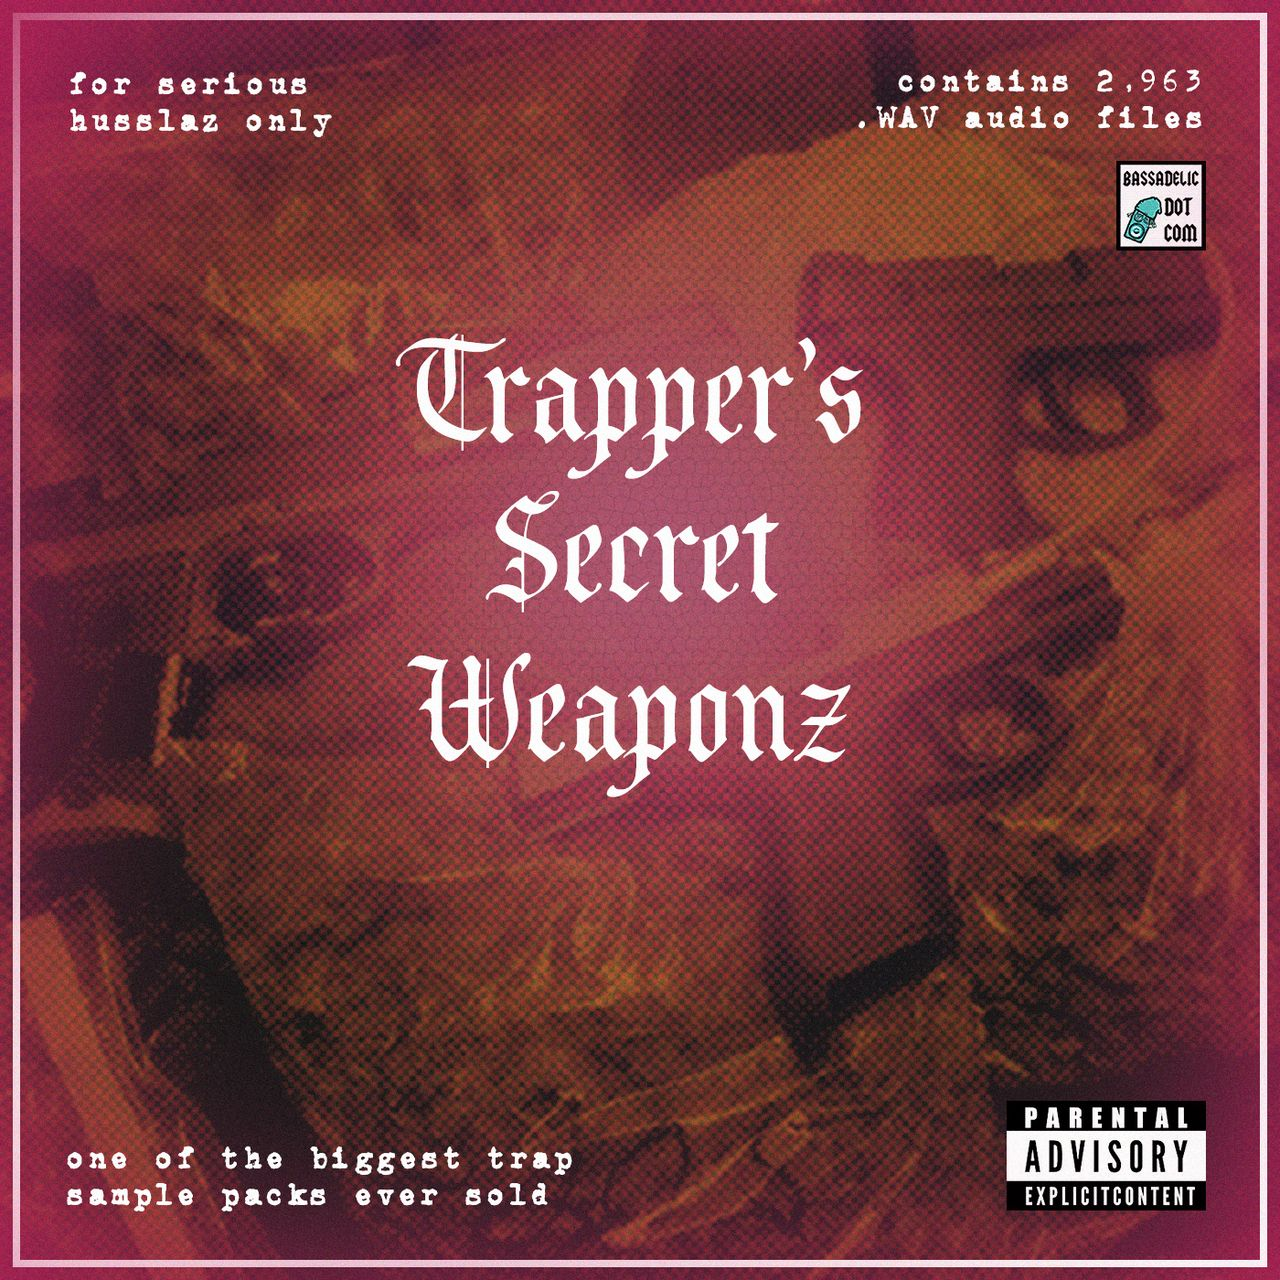 Trapper's Secret Weaponz (2900+ Samples) (50% off discount! )